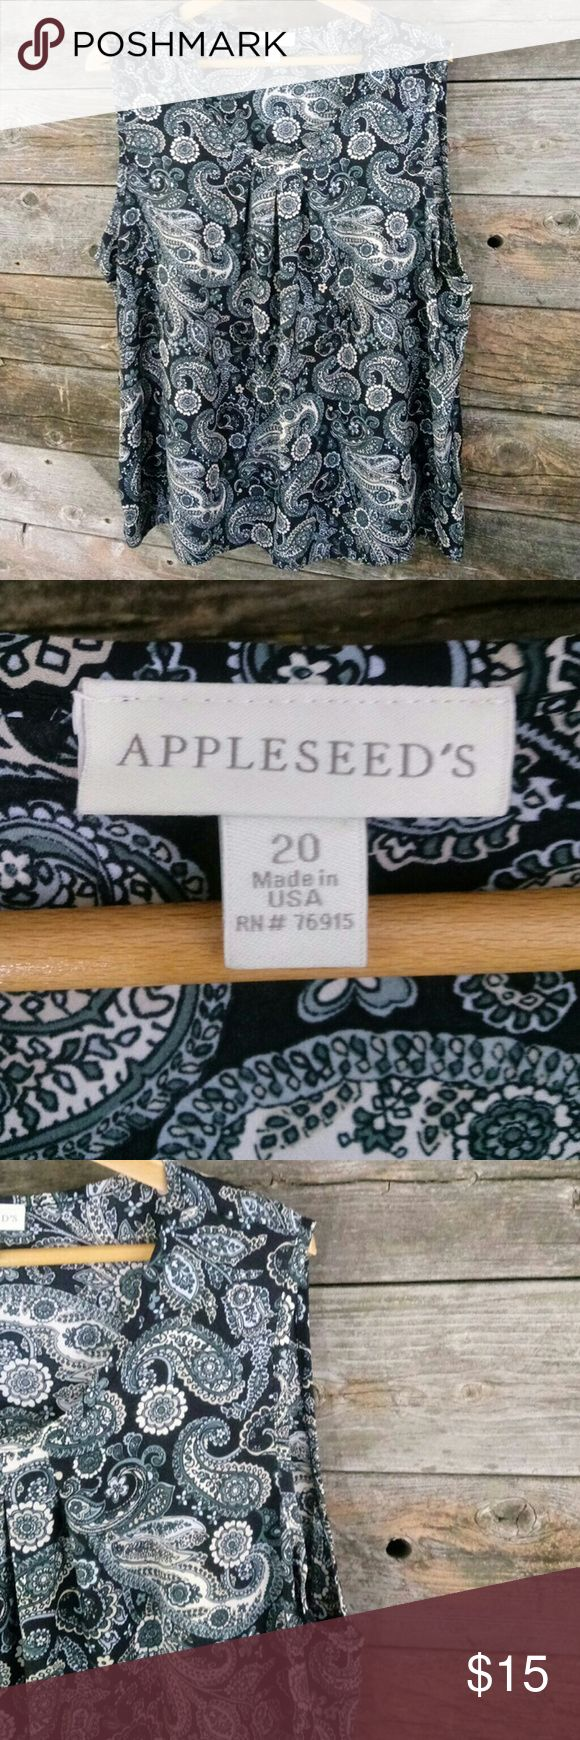 Appleseed's 20 Paisley Cami Tank nwot Appleseed's 20 Paisley Cami Tank. Perfect for layering.  That new color you don't have.  I love all Appleseed's products. So when i am buying I always pick these up.  😄Please take a look at my other items all Lane Bryant cloths below $15.😄 Appleseed's Tops Camisoles